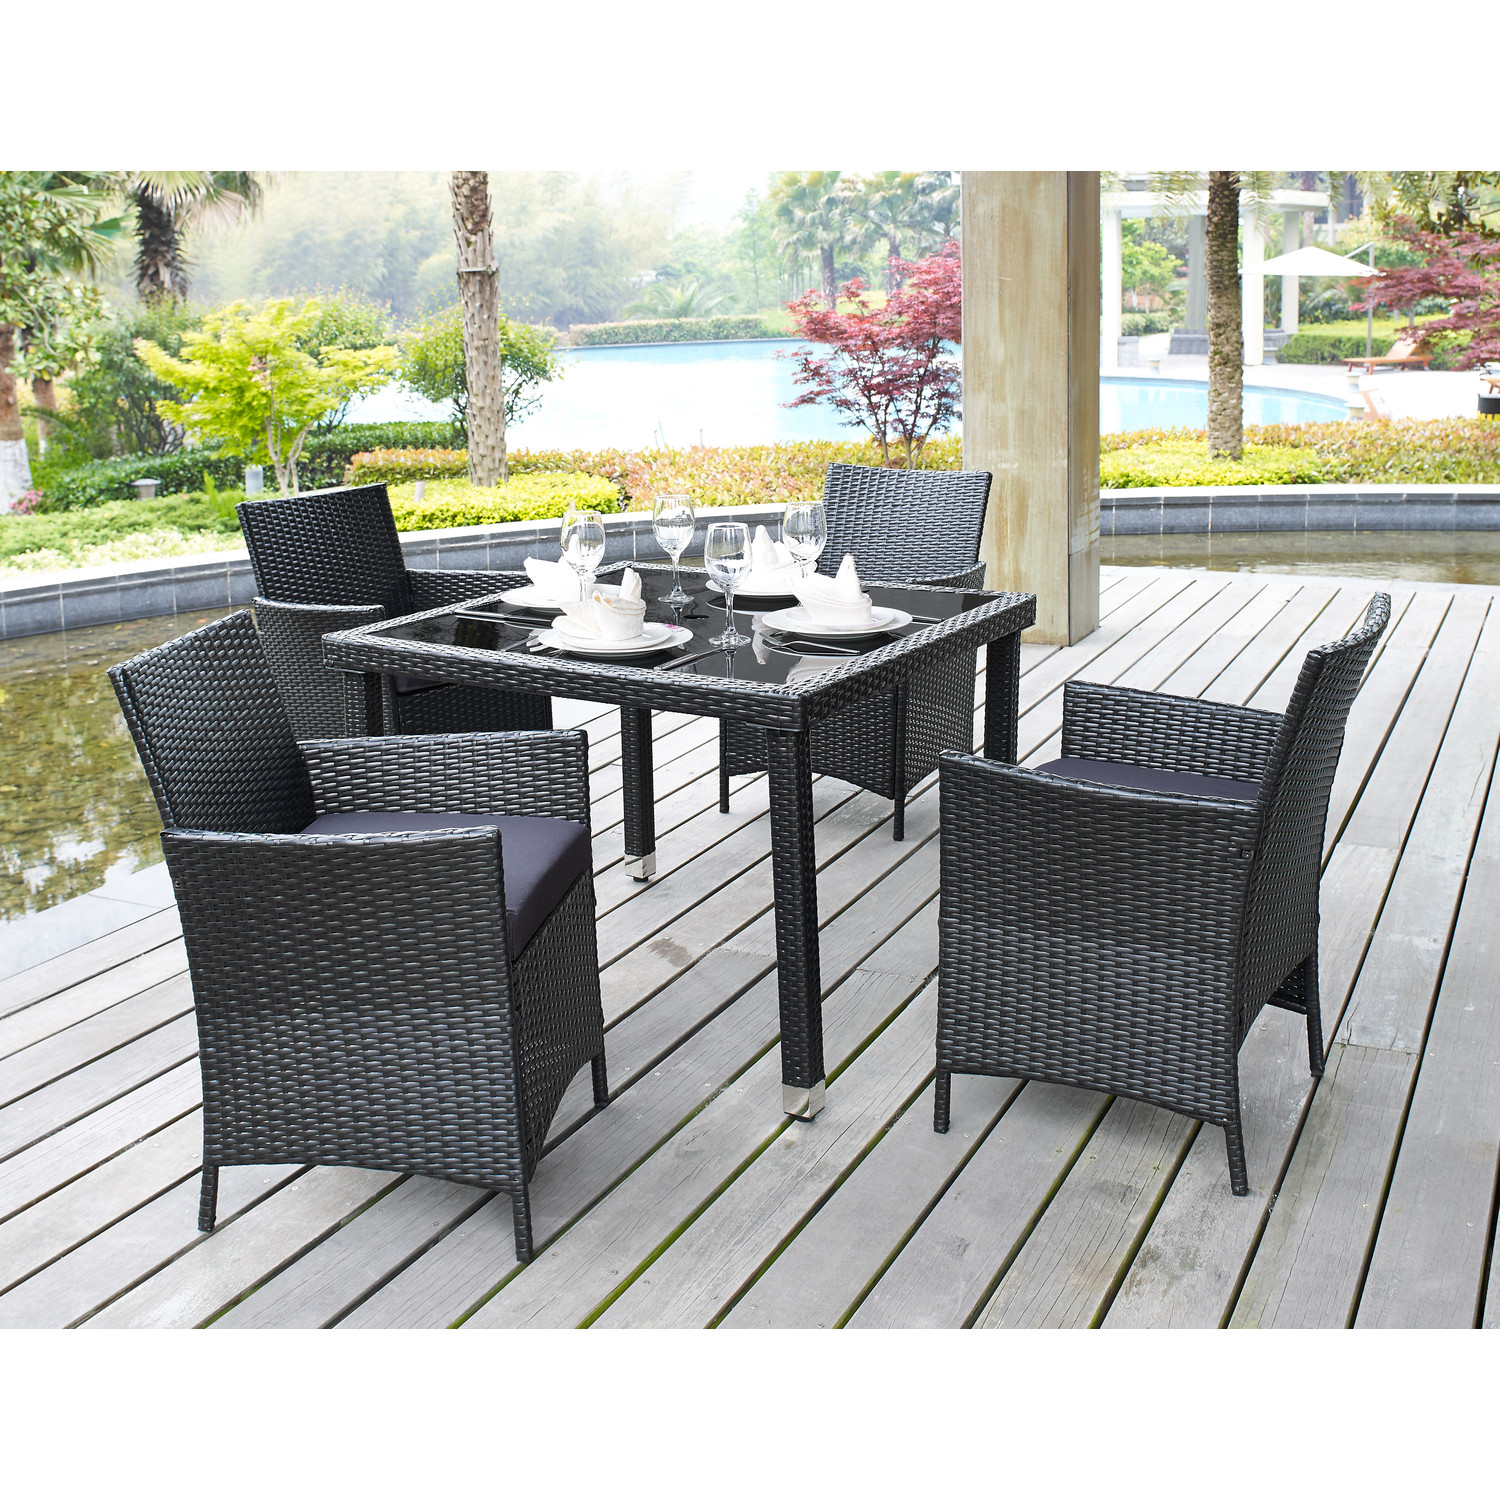 Places to go for affordable modern outdoor furniture for Outdoor furniture images